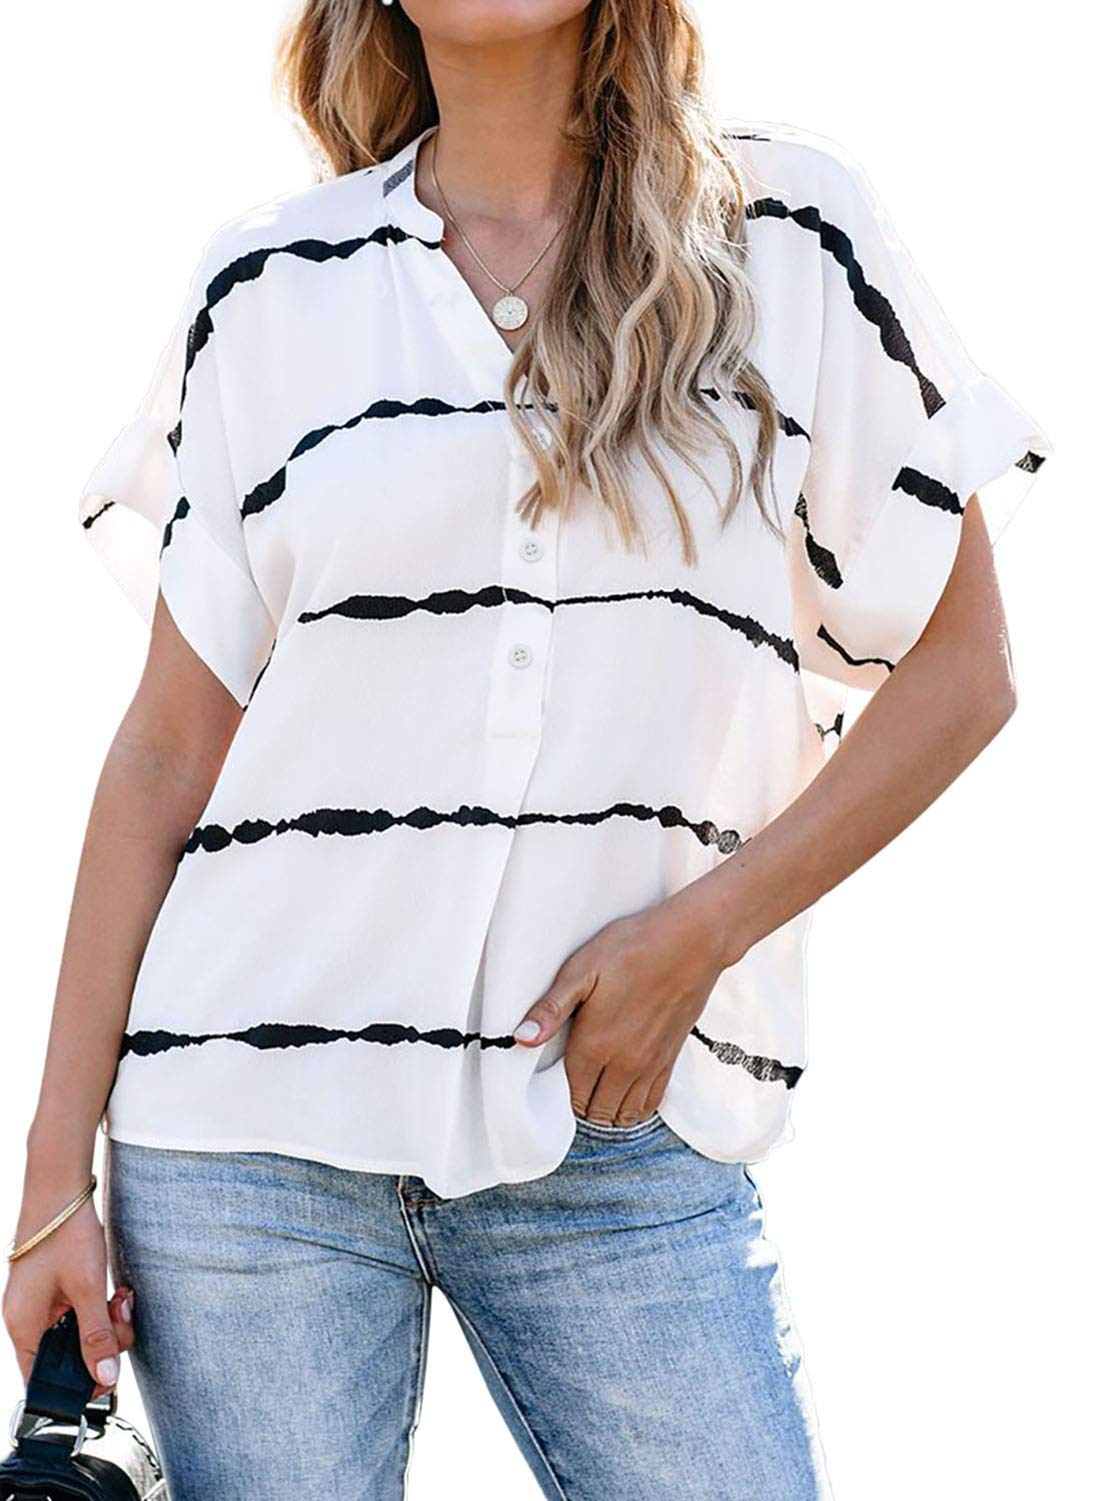 Chase Secret Women's V Neck Collared Tunic Shirts Roll up Sleeve Button Down Blouse Striped Tops with Pockets